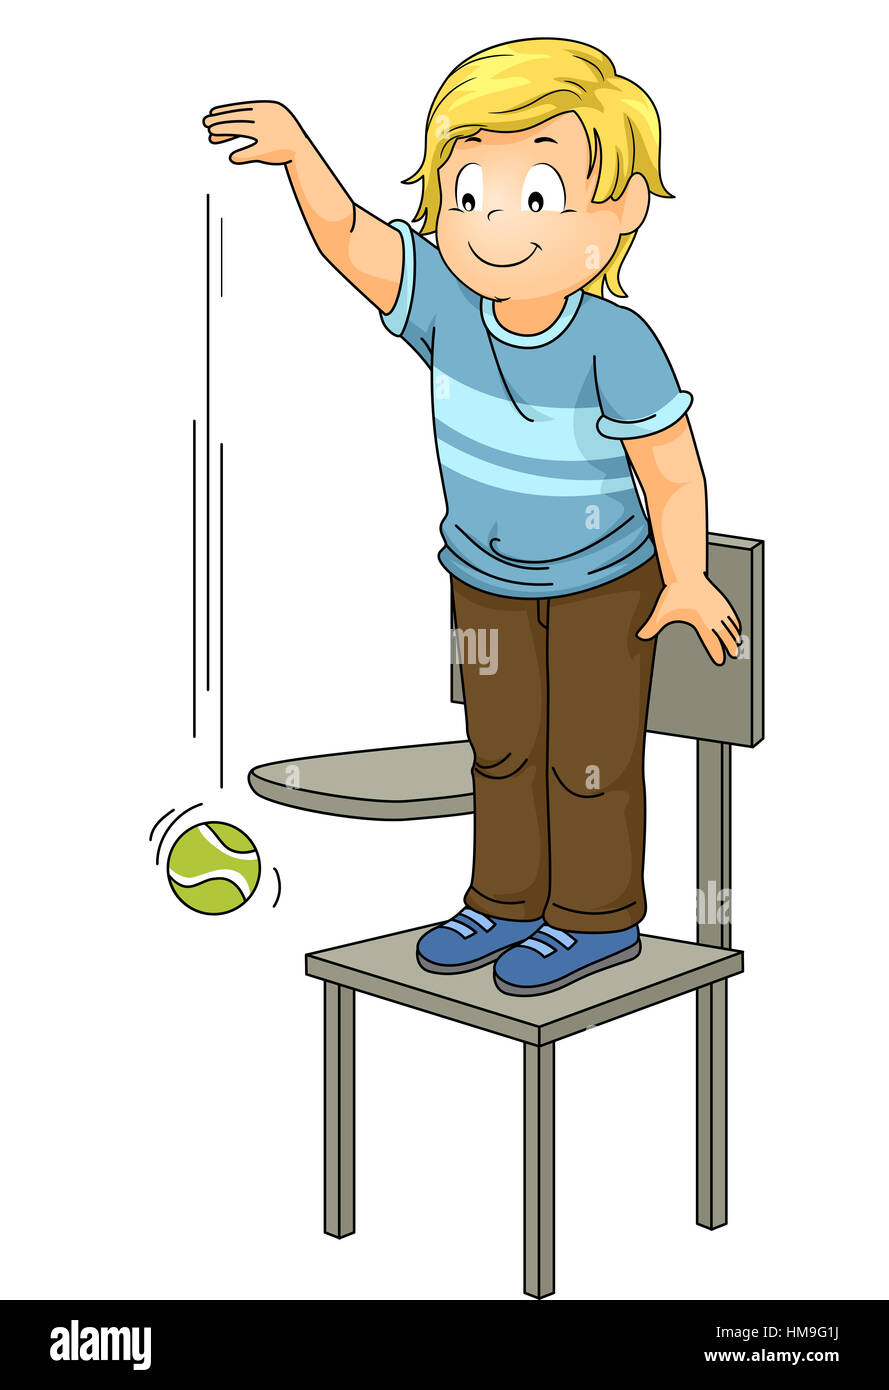 Illustration of a Little Boy Dropping a Ball from a High ...